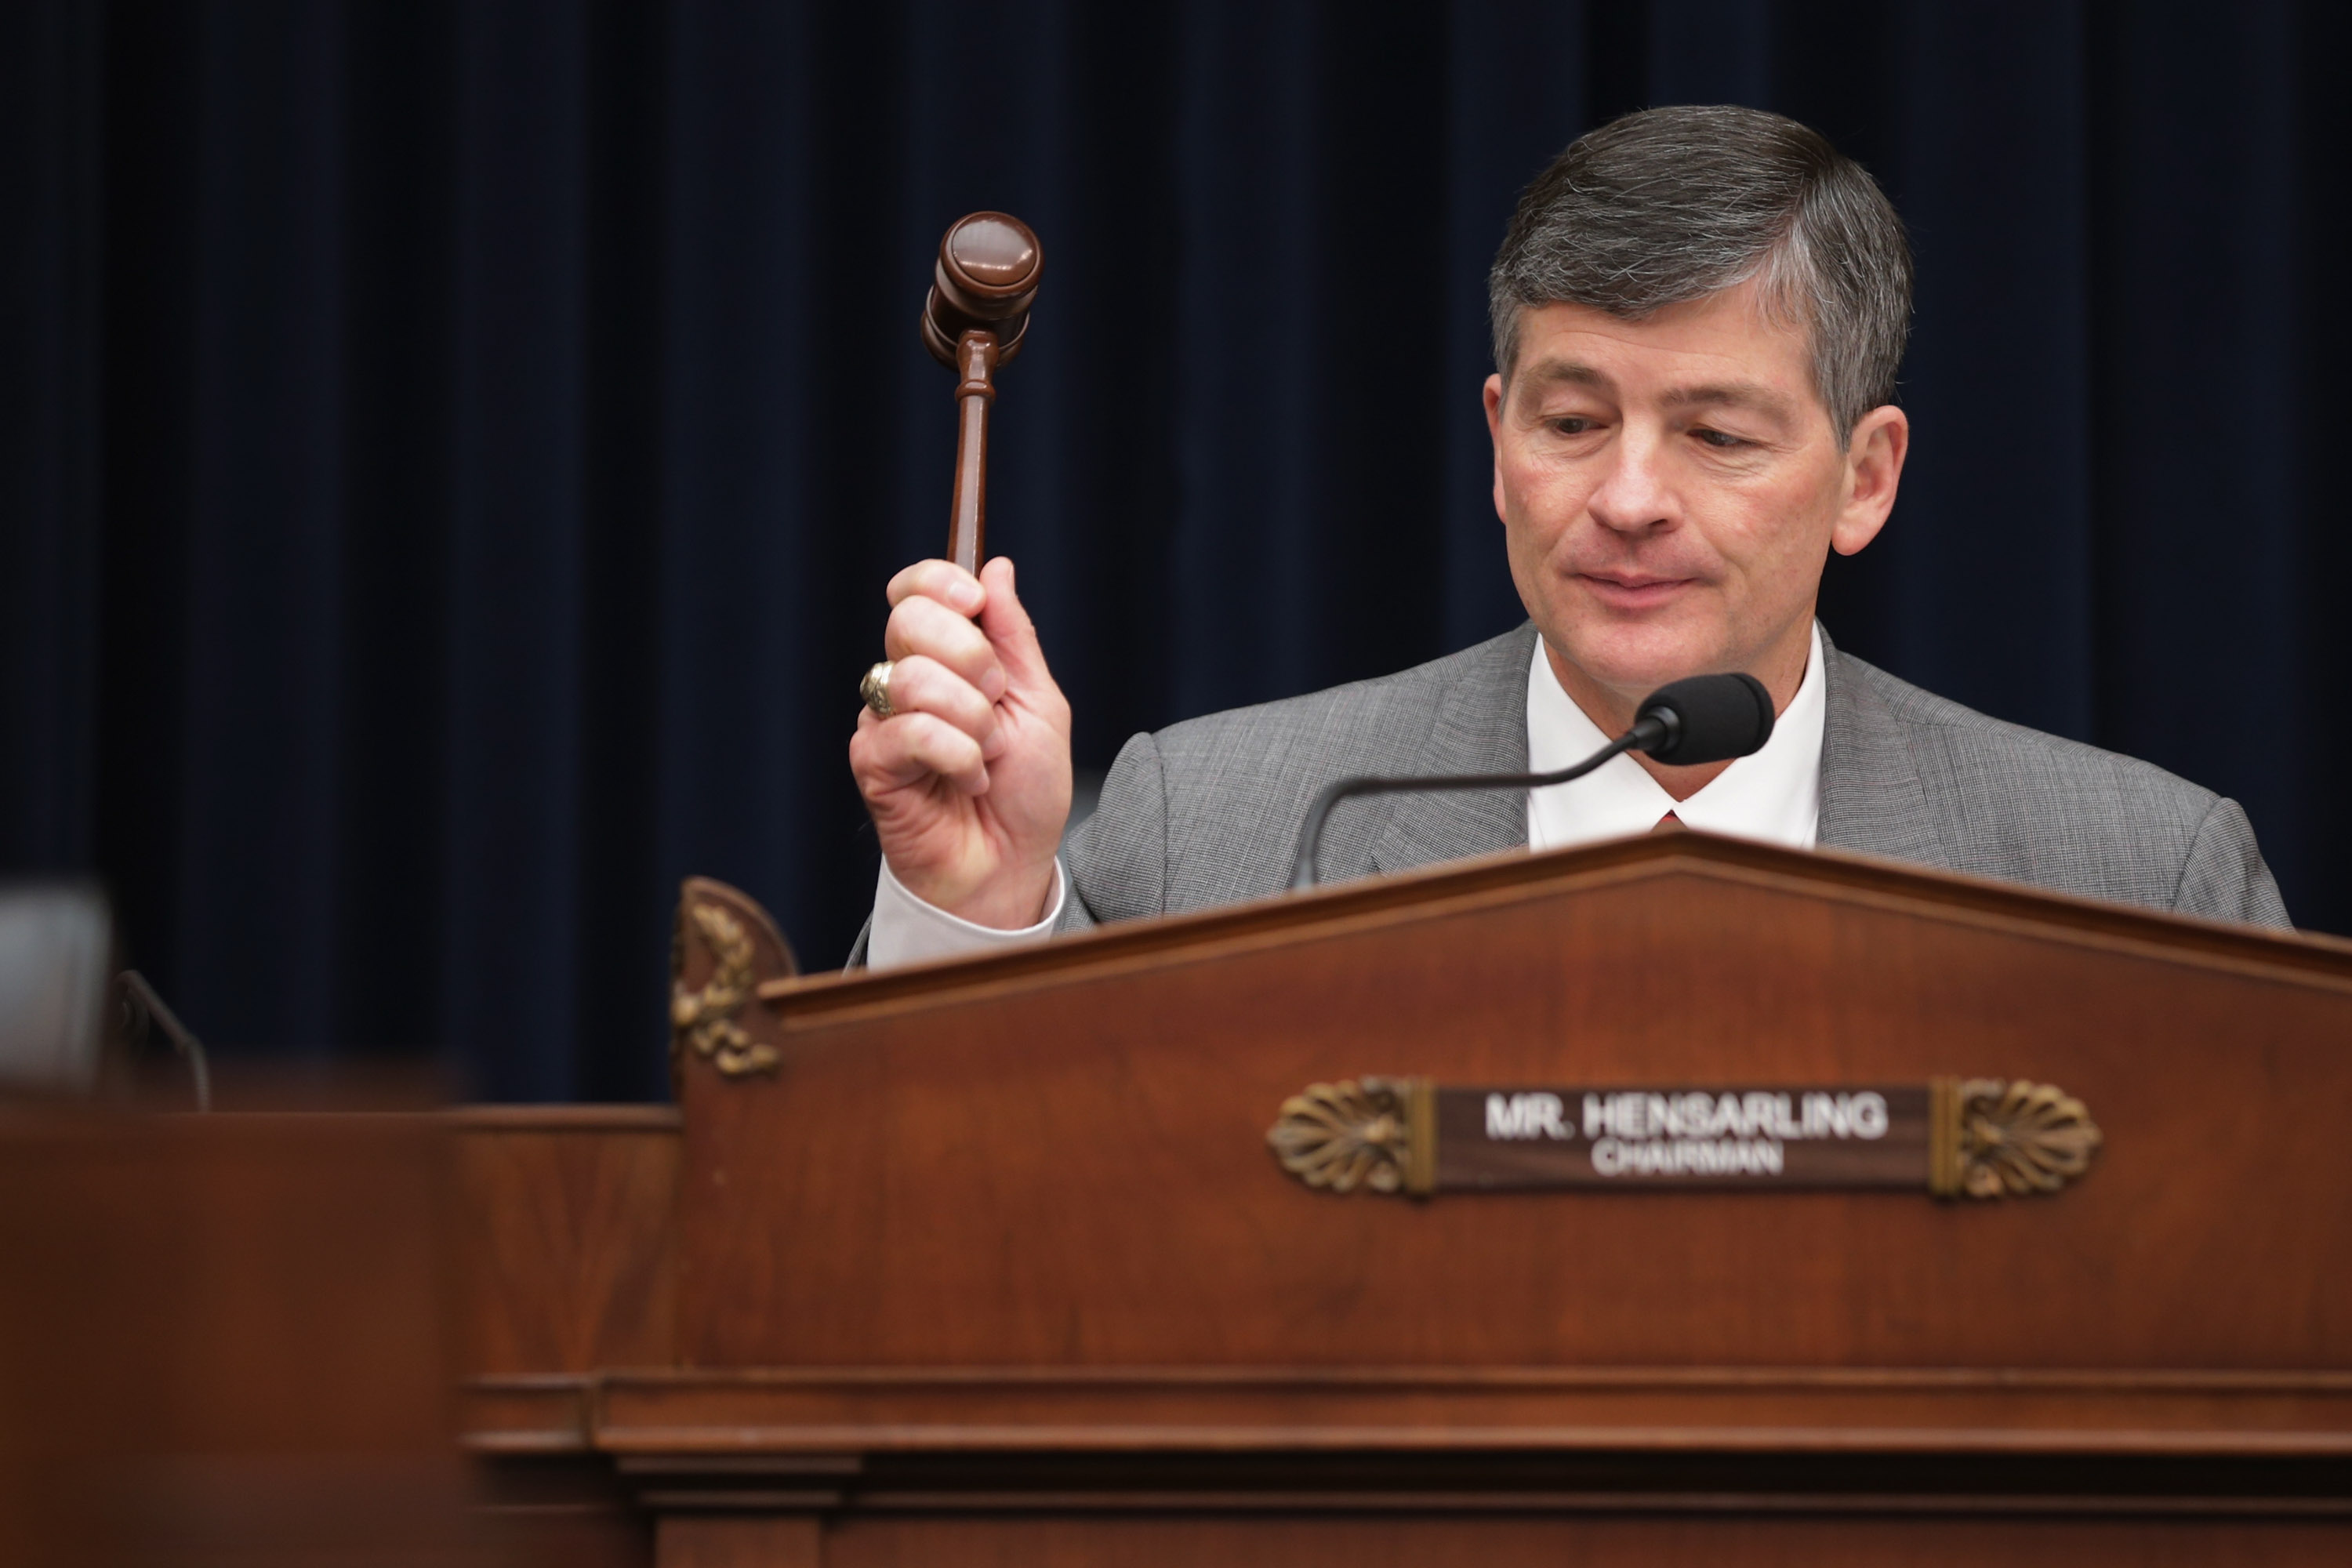 House Financial Services Committee Chairman Jeb Hensarling (R-TX)has championed the CHOICE Act.